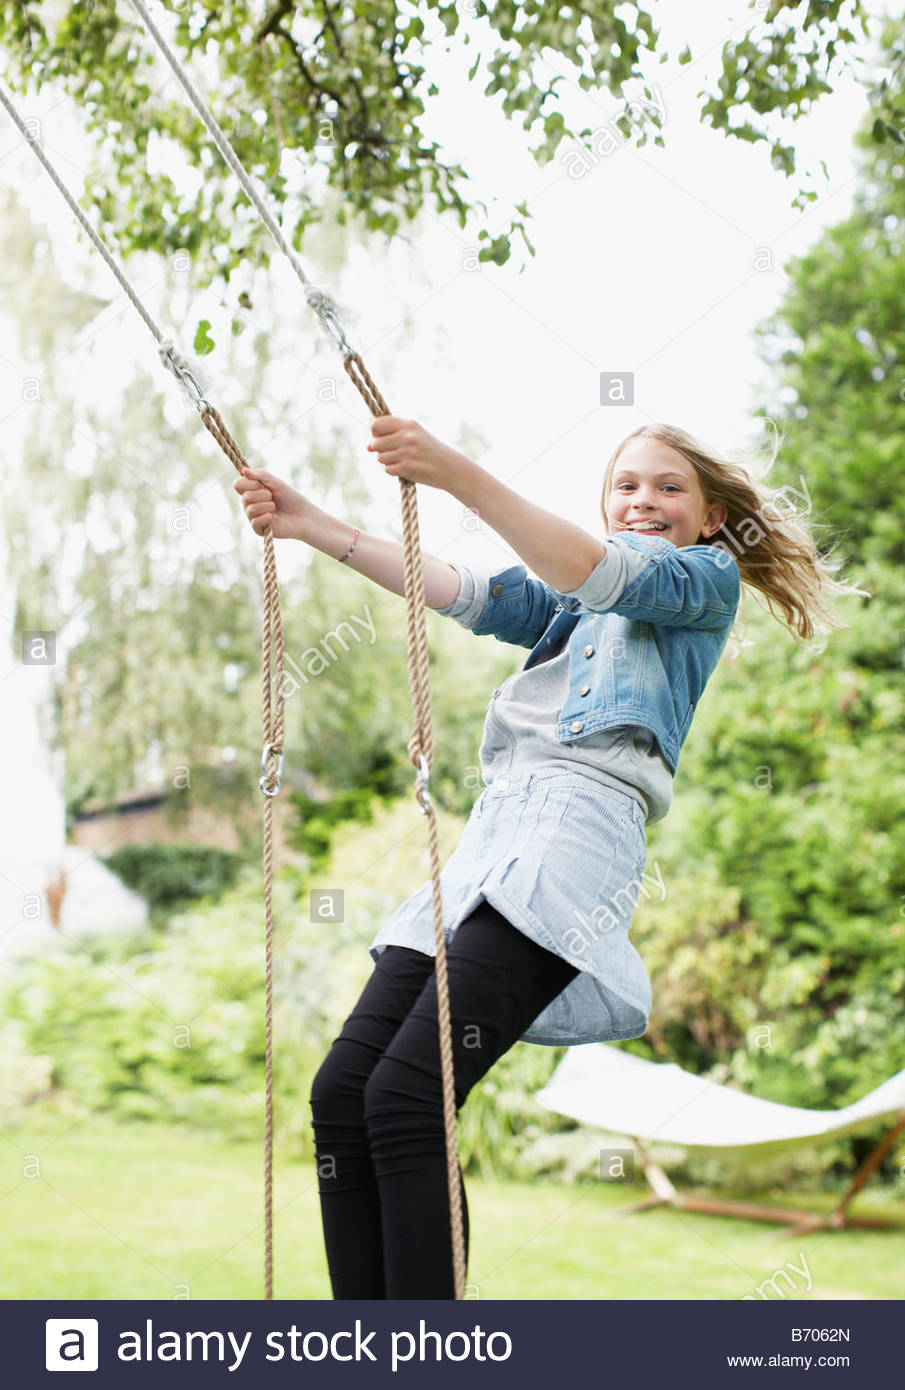 standing on swing in backyard stock photo royalty free image